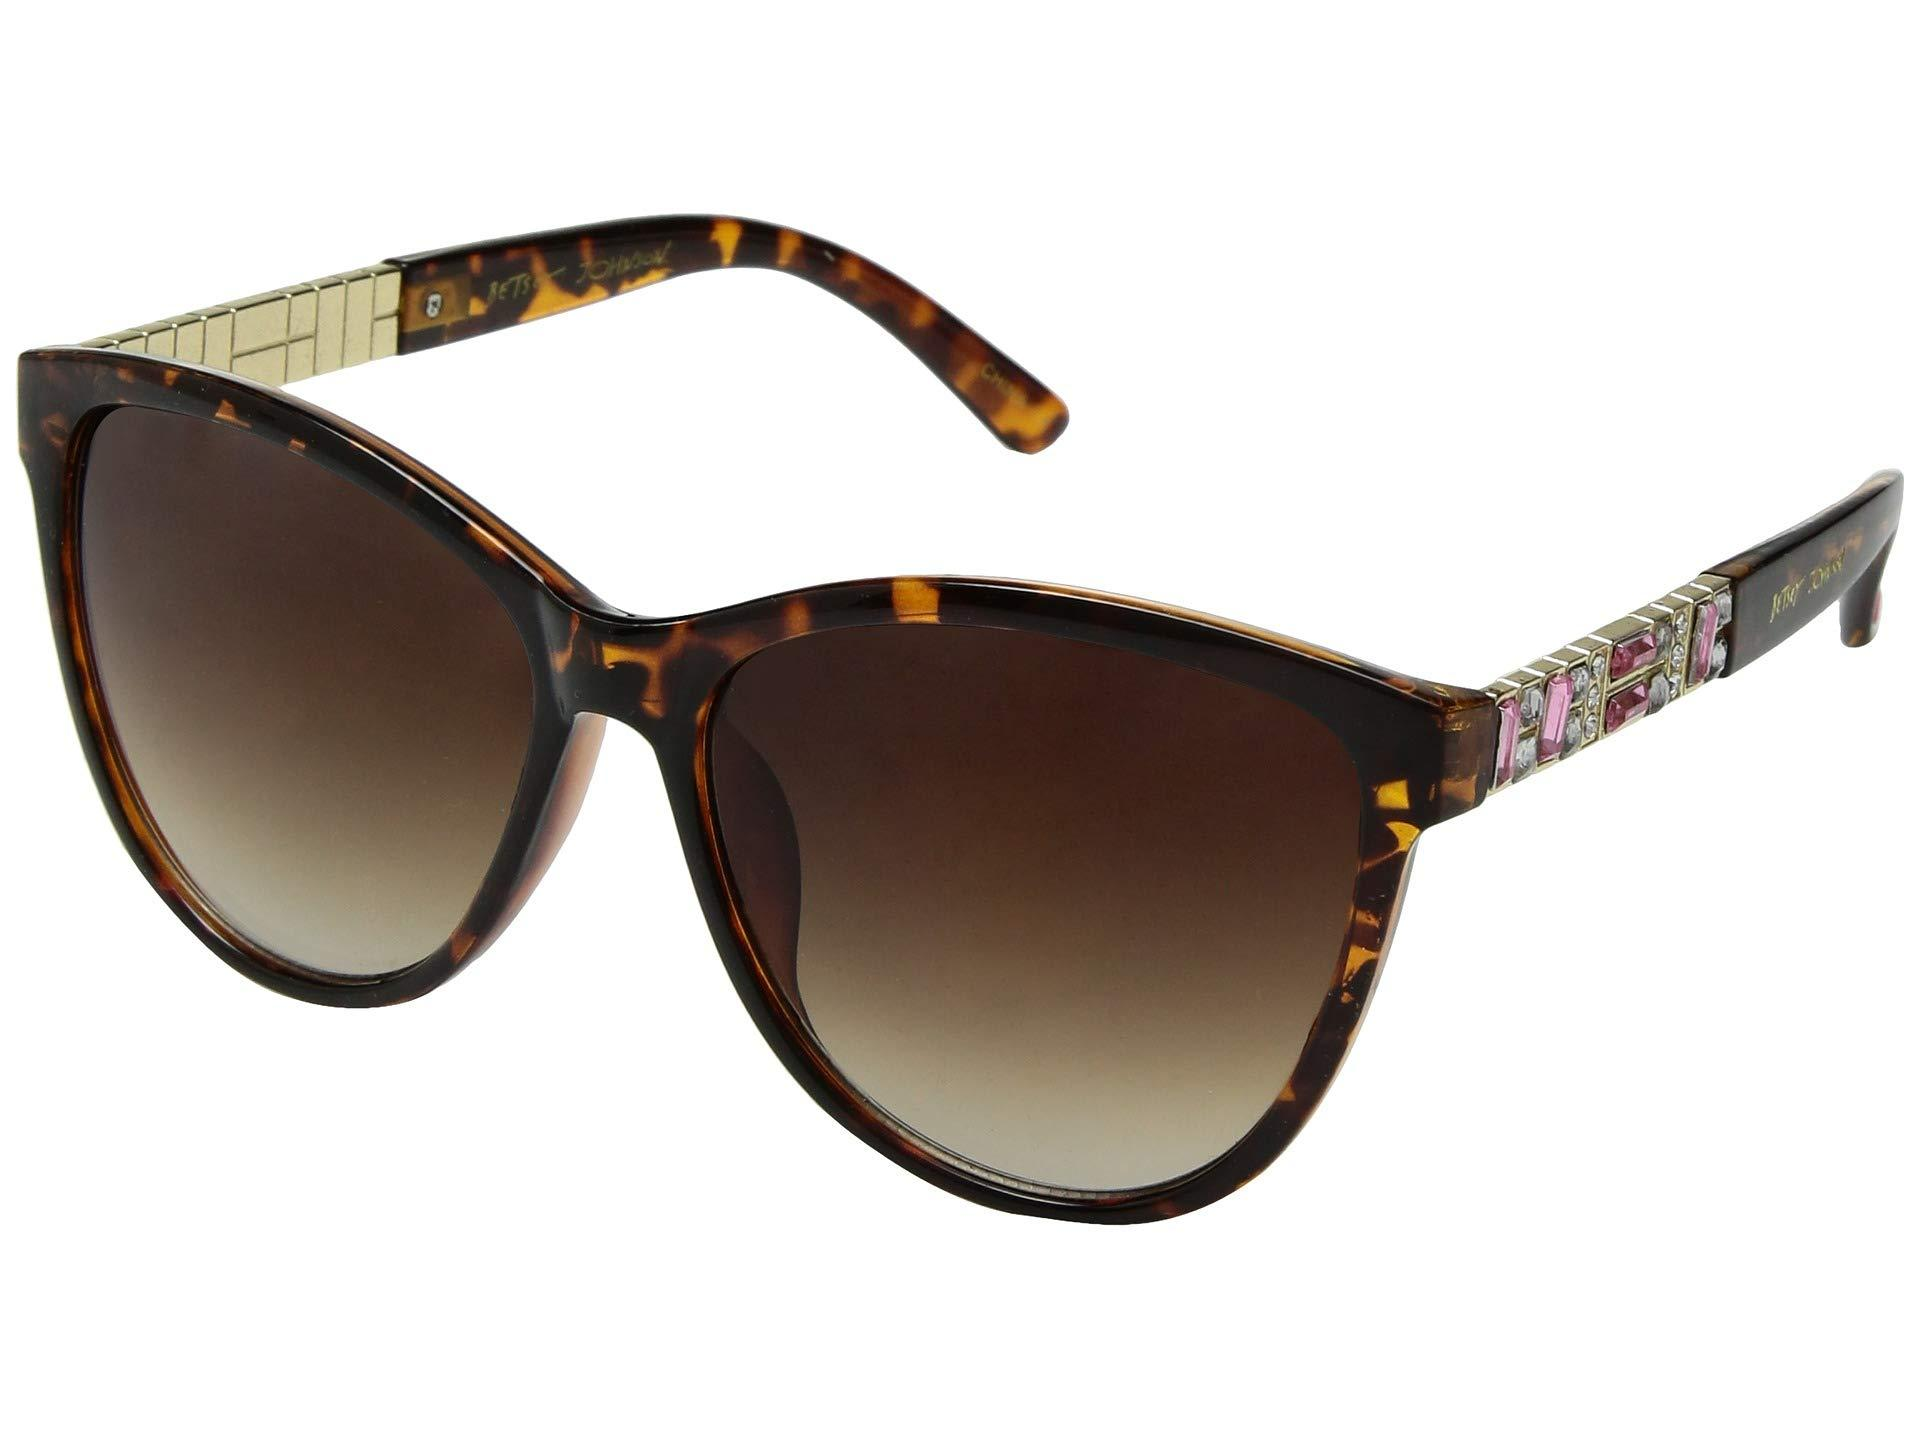 4085a501541 Lyst - Betsey Johnson Bj879199 in Brown